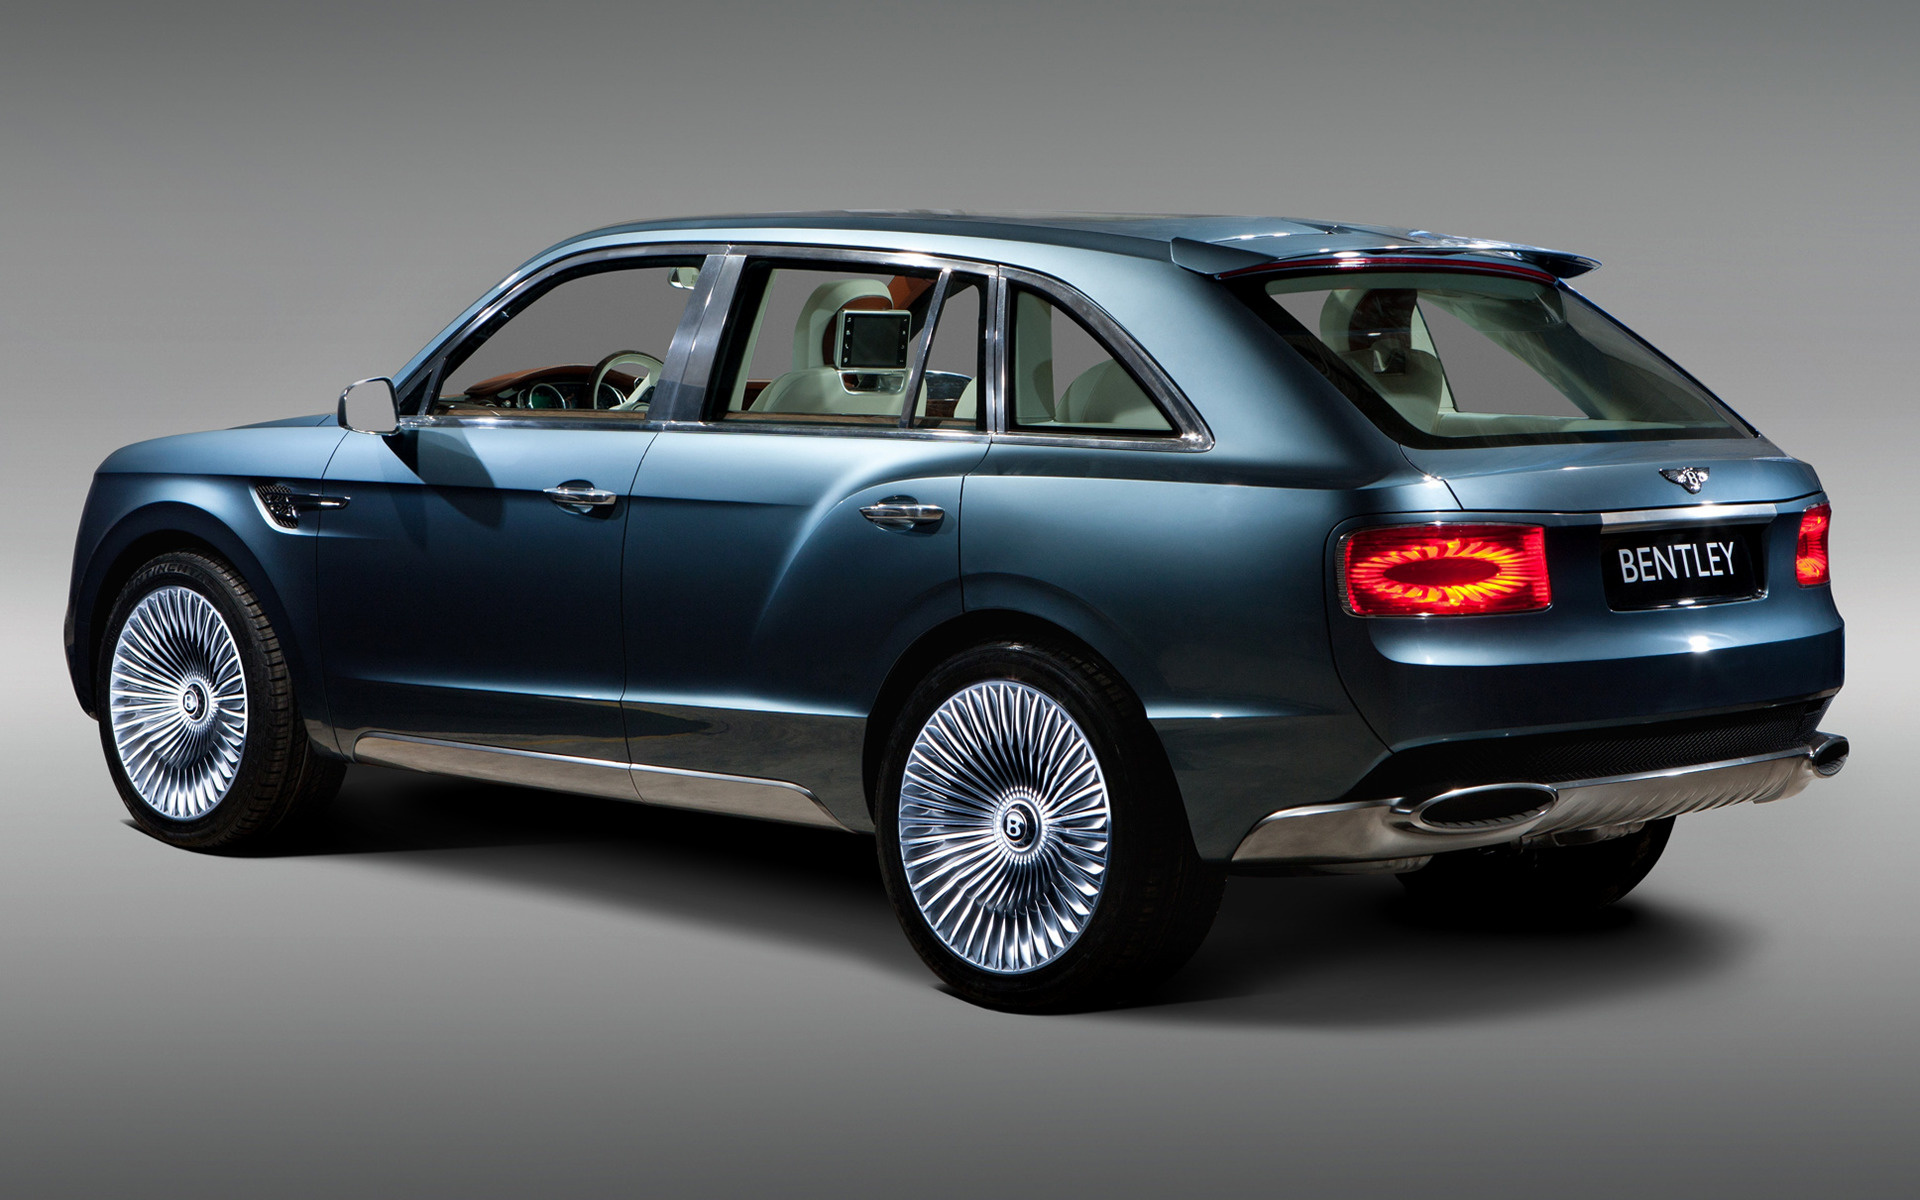 Bentley EXP 9 F Concept (2012) Wallpapers and HD Images - Car Pixel